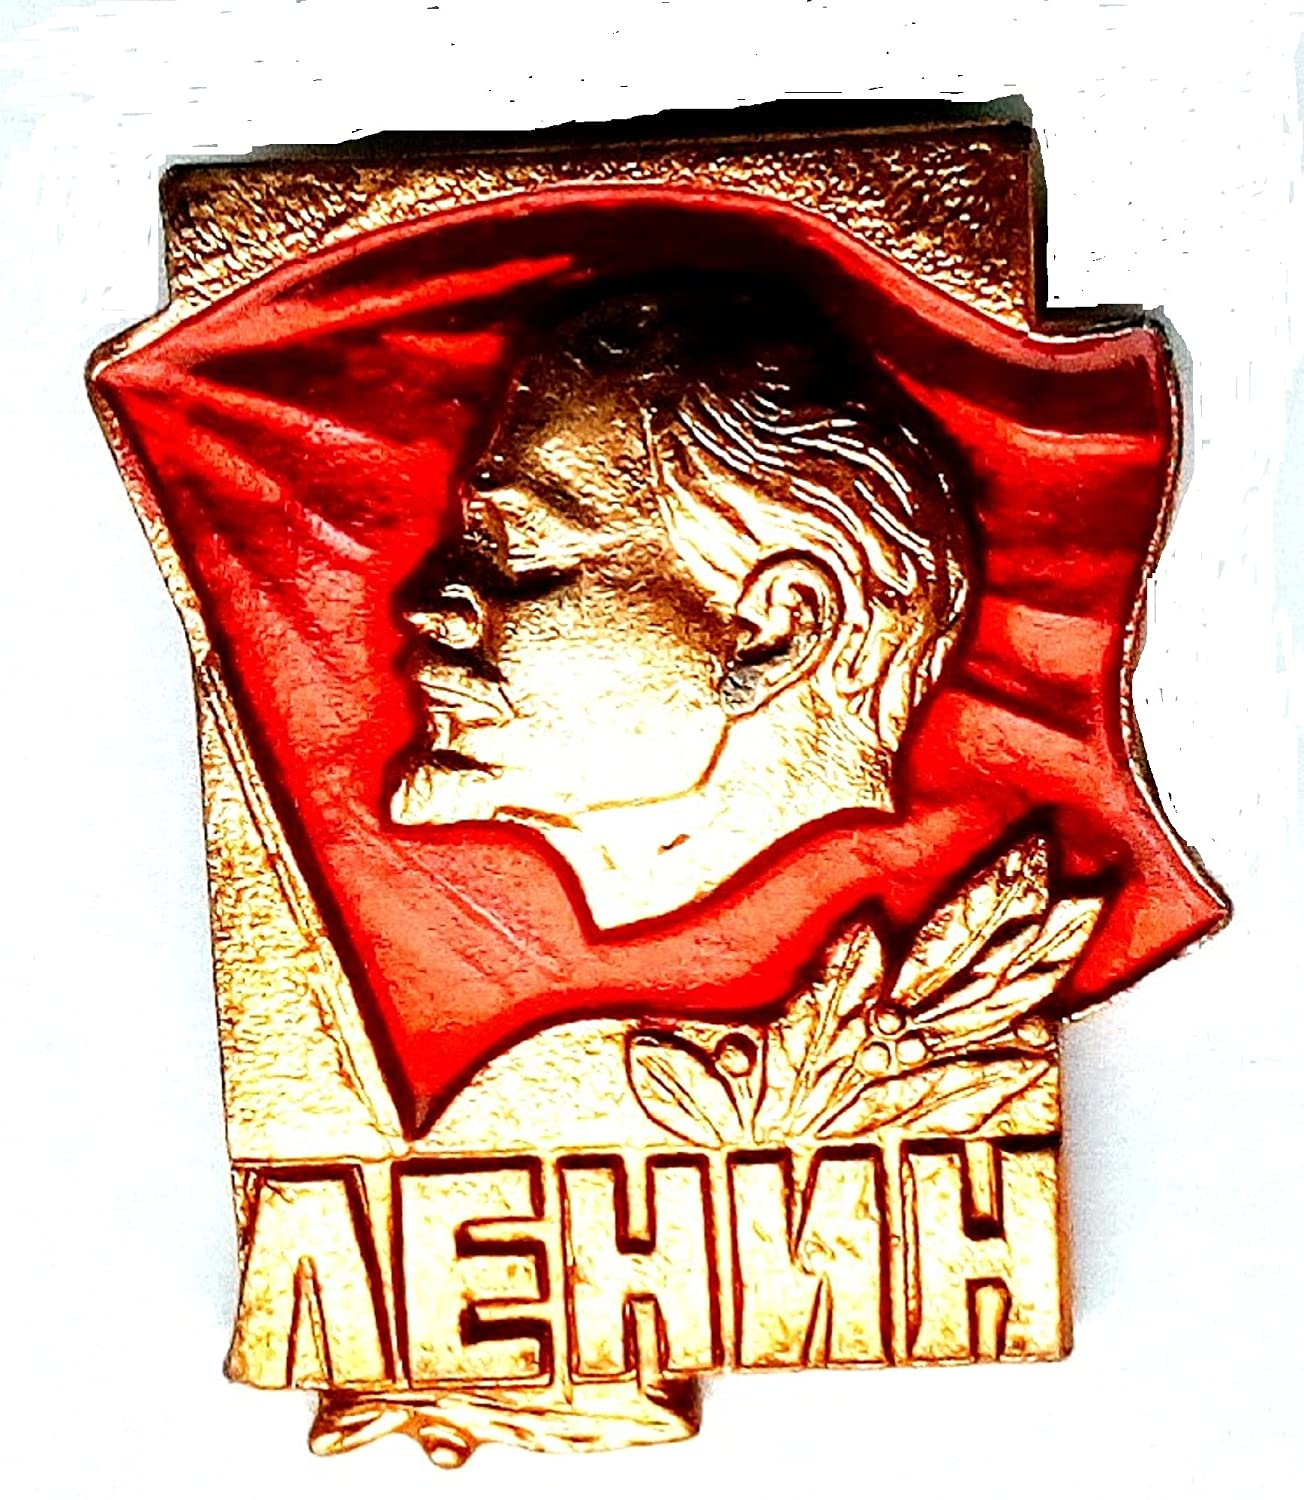 Lenin Red banner USSR Soviet Russian Communist Historical Political Pin Badge